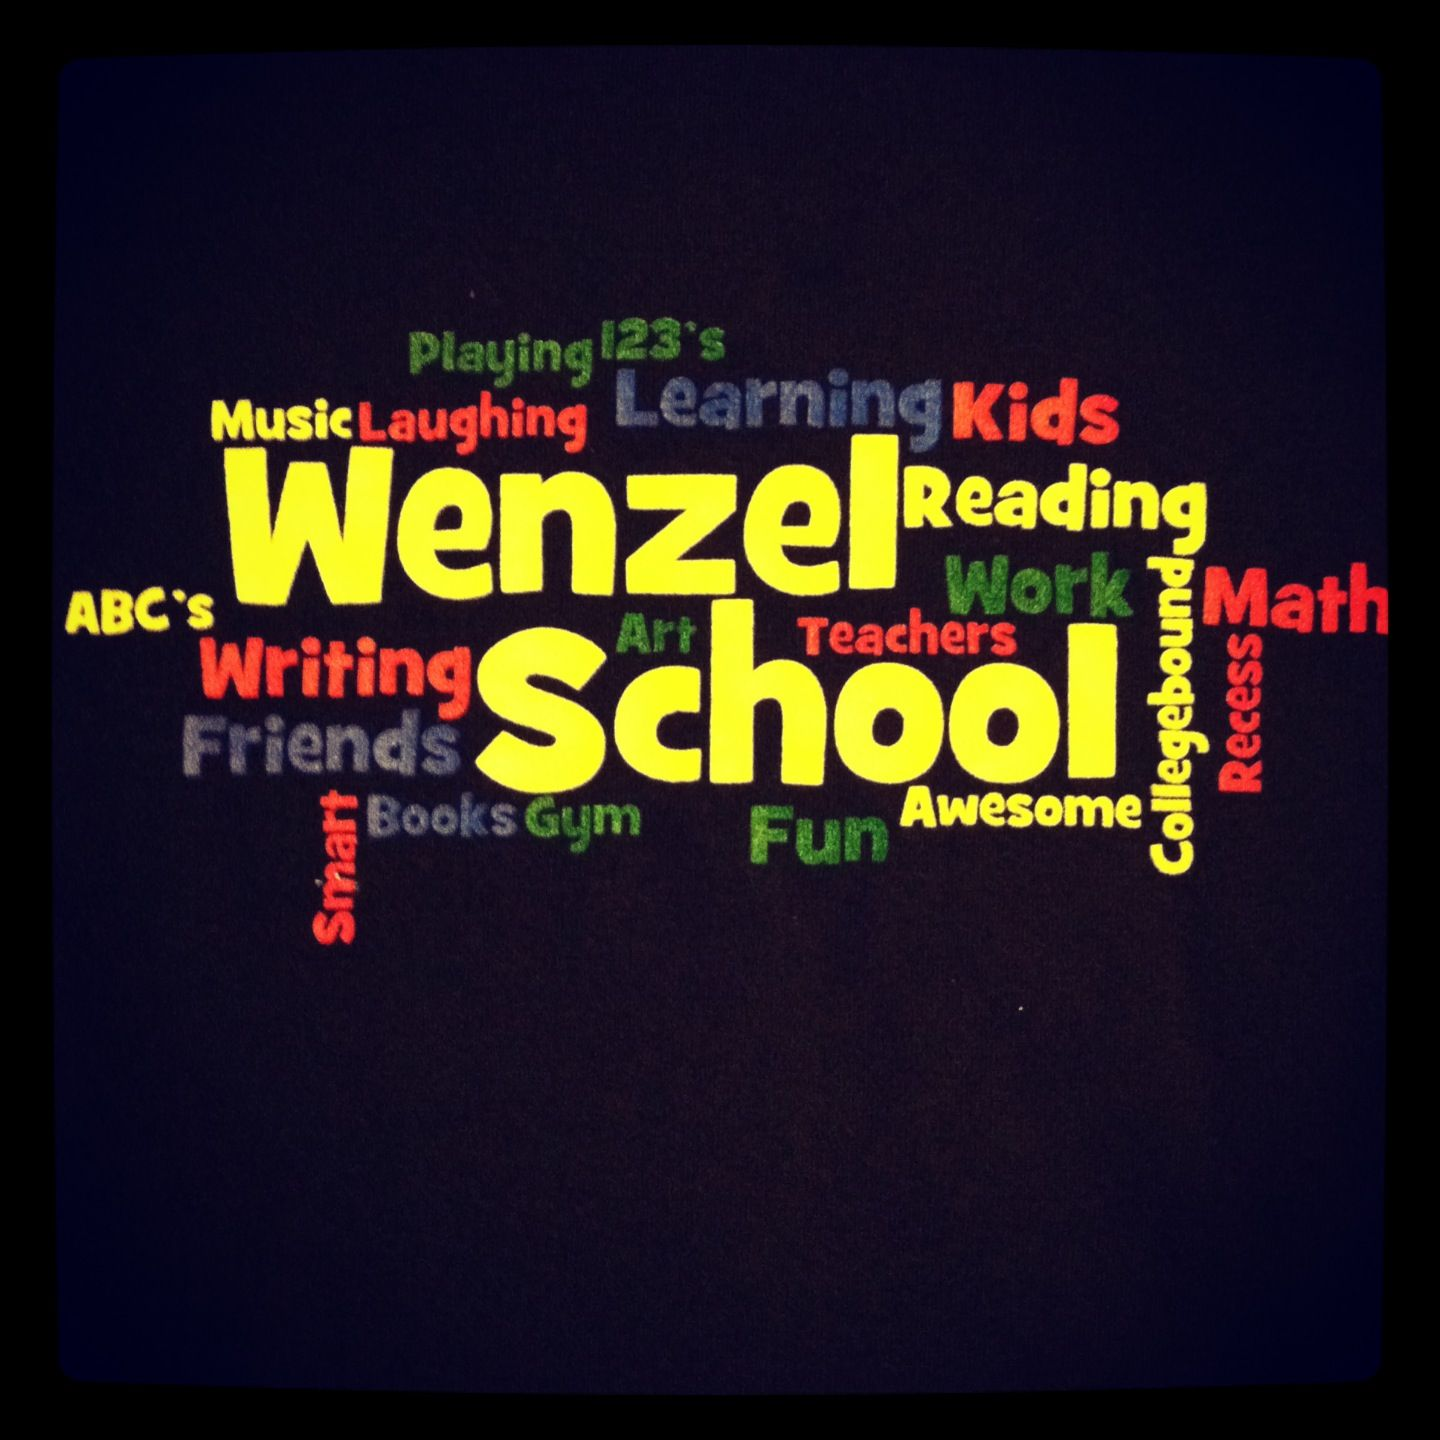 T Shirt Design Ideas For Schools an example of three t shirts from a ssa apparel store perfect for church shirt design custom elementary Elementary School T Shirts Design Ideas Google Search